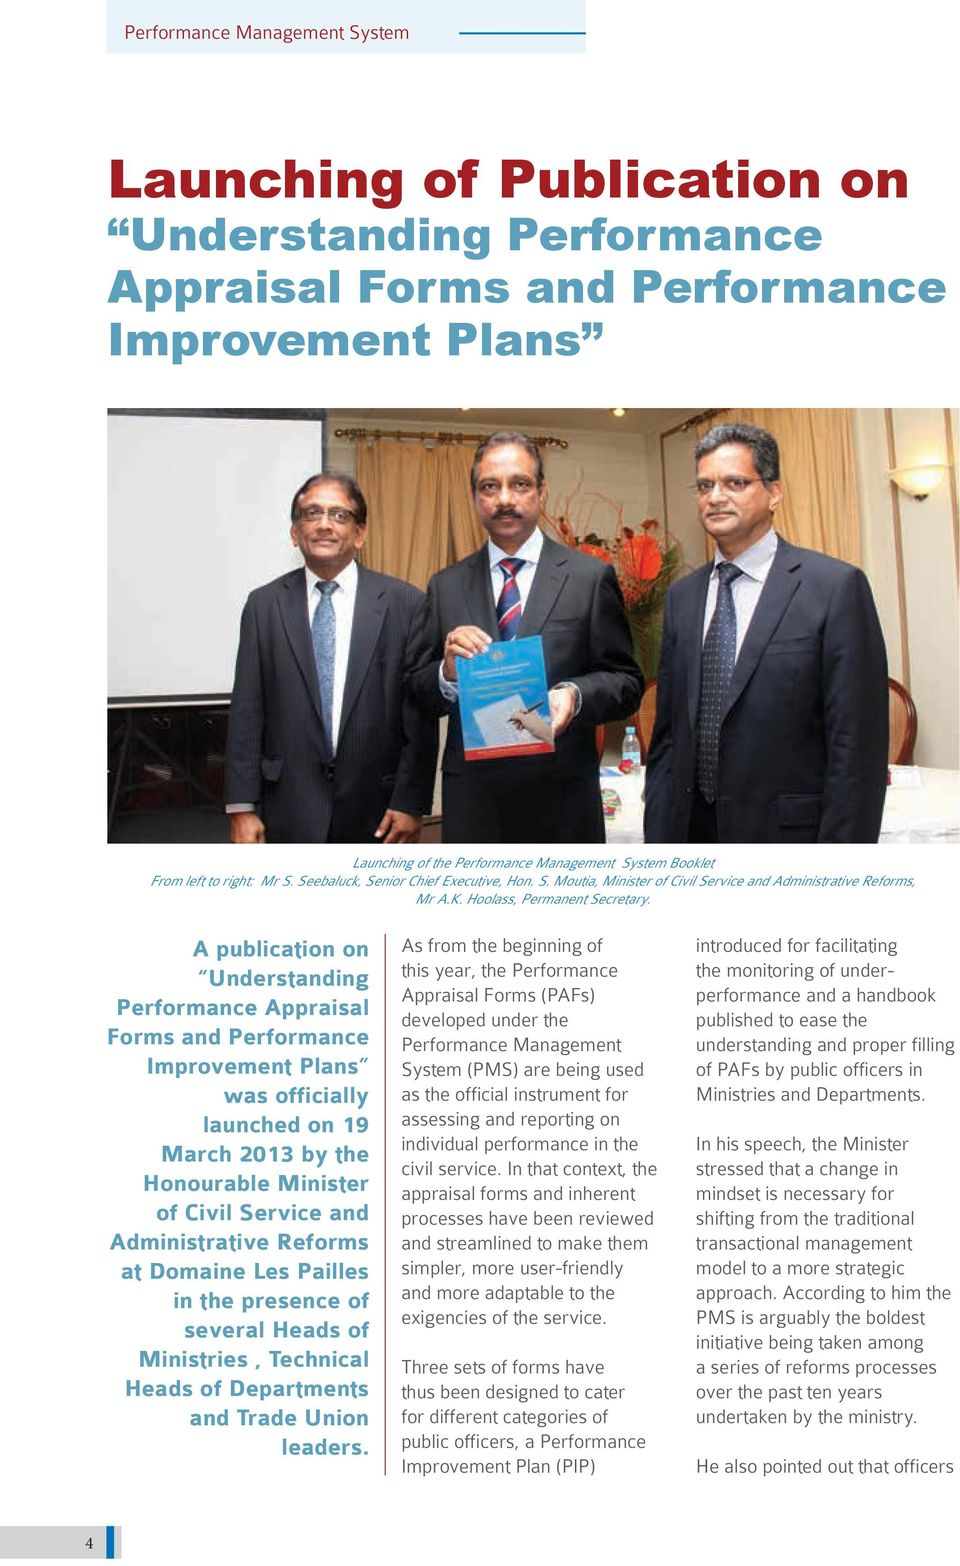 A publication on Understanding Performance Appraisal Forms and Performance Improvement Plans was officially launched on 19 March 2013 by the Honourable Minister of Civil Service and Administrative